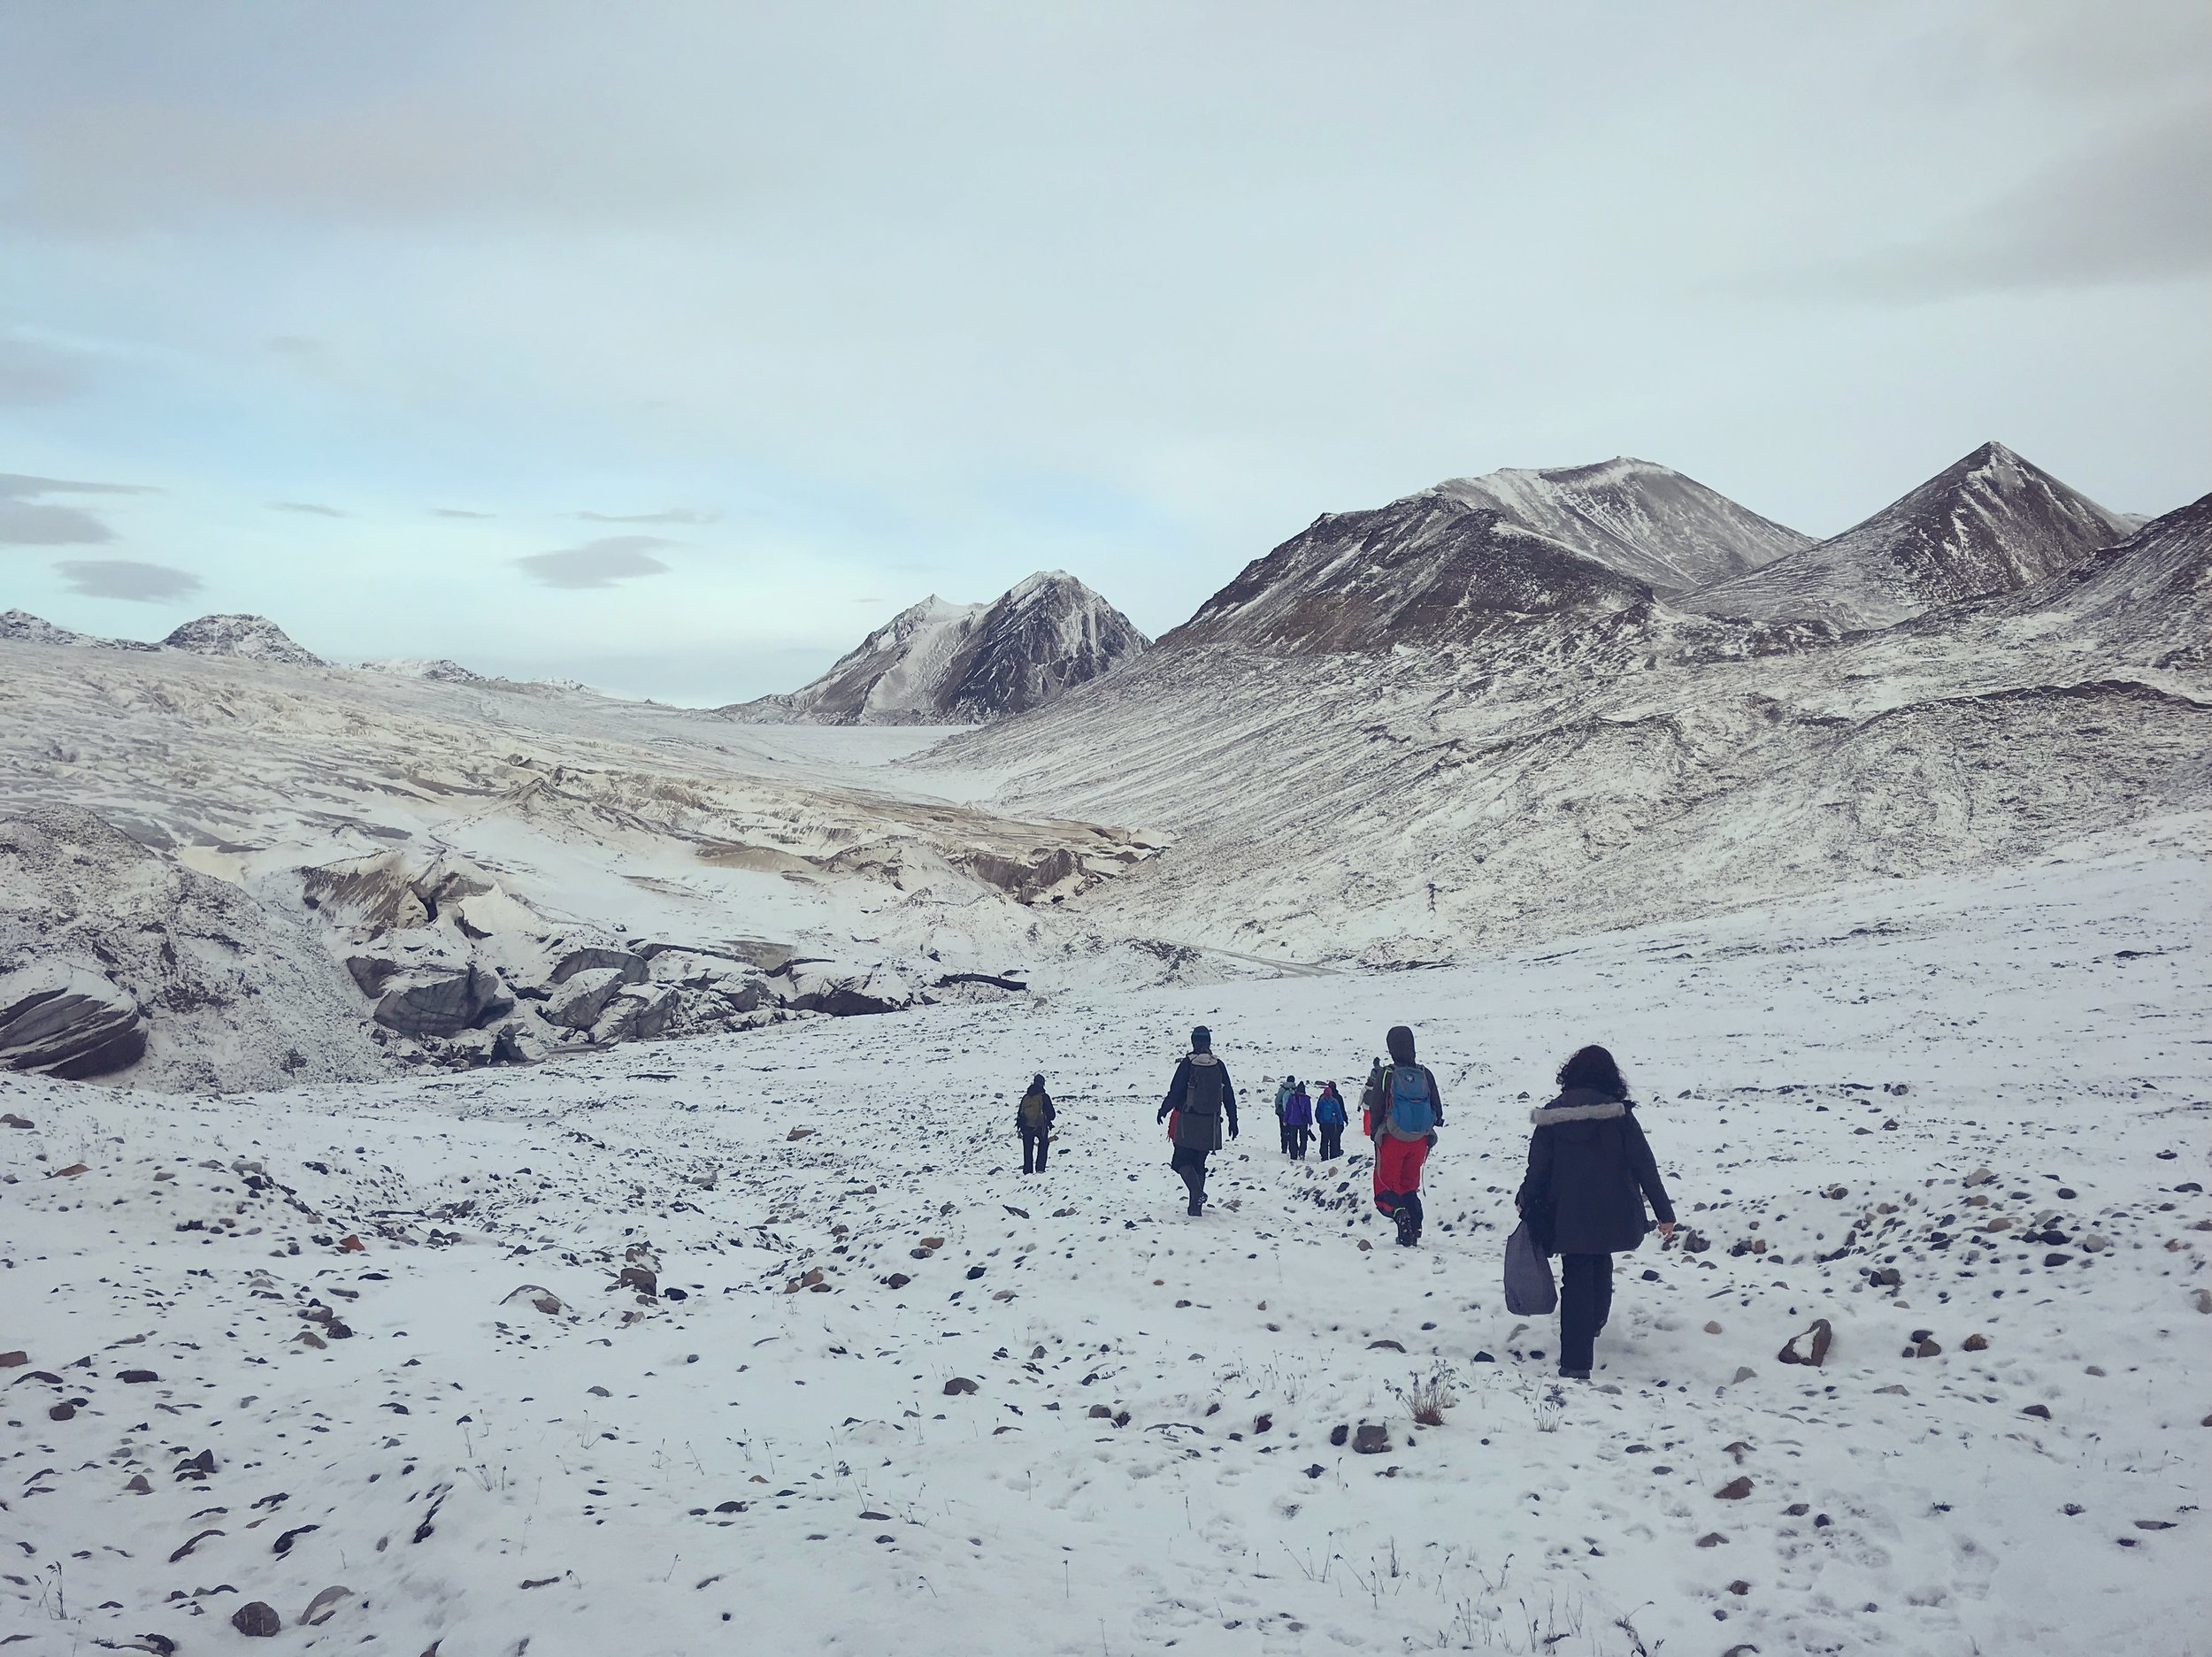 Hiking towards the glacier Esmarkbreen (on the left) at Ymerbukta.